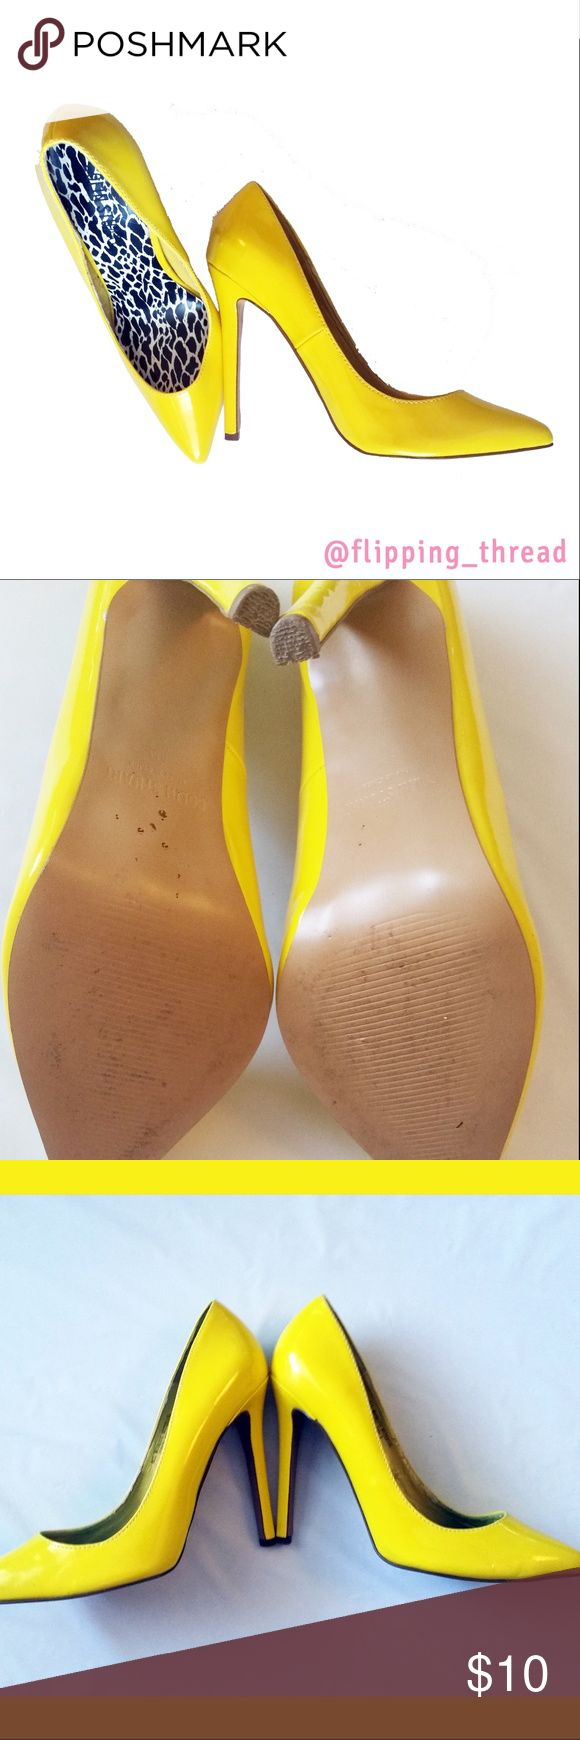 Colin Stuart Canary Yellow Stilettos - Size 8M Colin Stuart Canary Yellow Stilettos - Size 8M  Why not jazz up your outfit with a pair of fun colored yellow heels.  Good condition,  pre-loved.  Soles have normal/light wear.  Insides  have some wear/damage around the stitching. Price reflects this.  Heels: 4 in Colin Stuart Shoes Heels